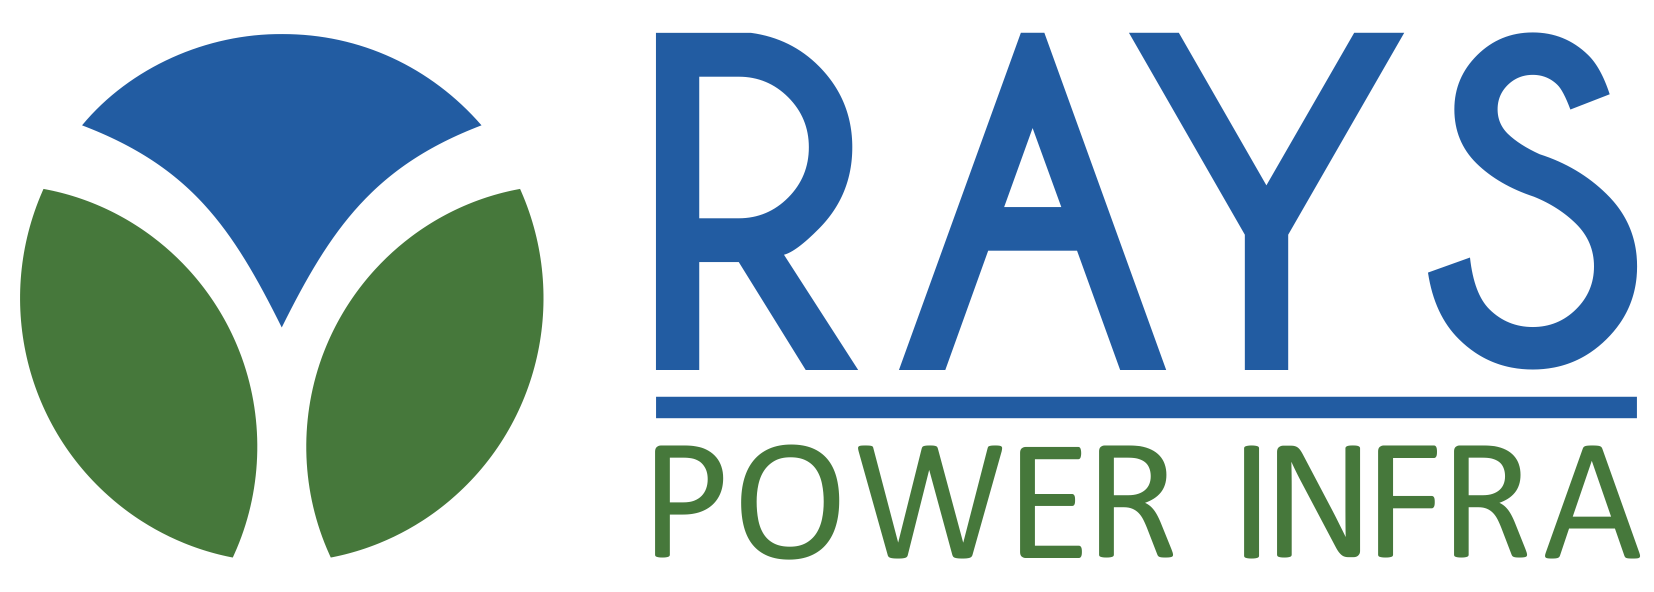 Rays power infra logo